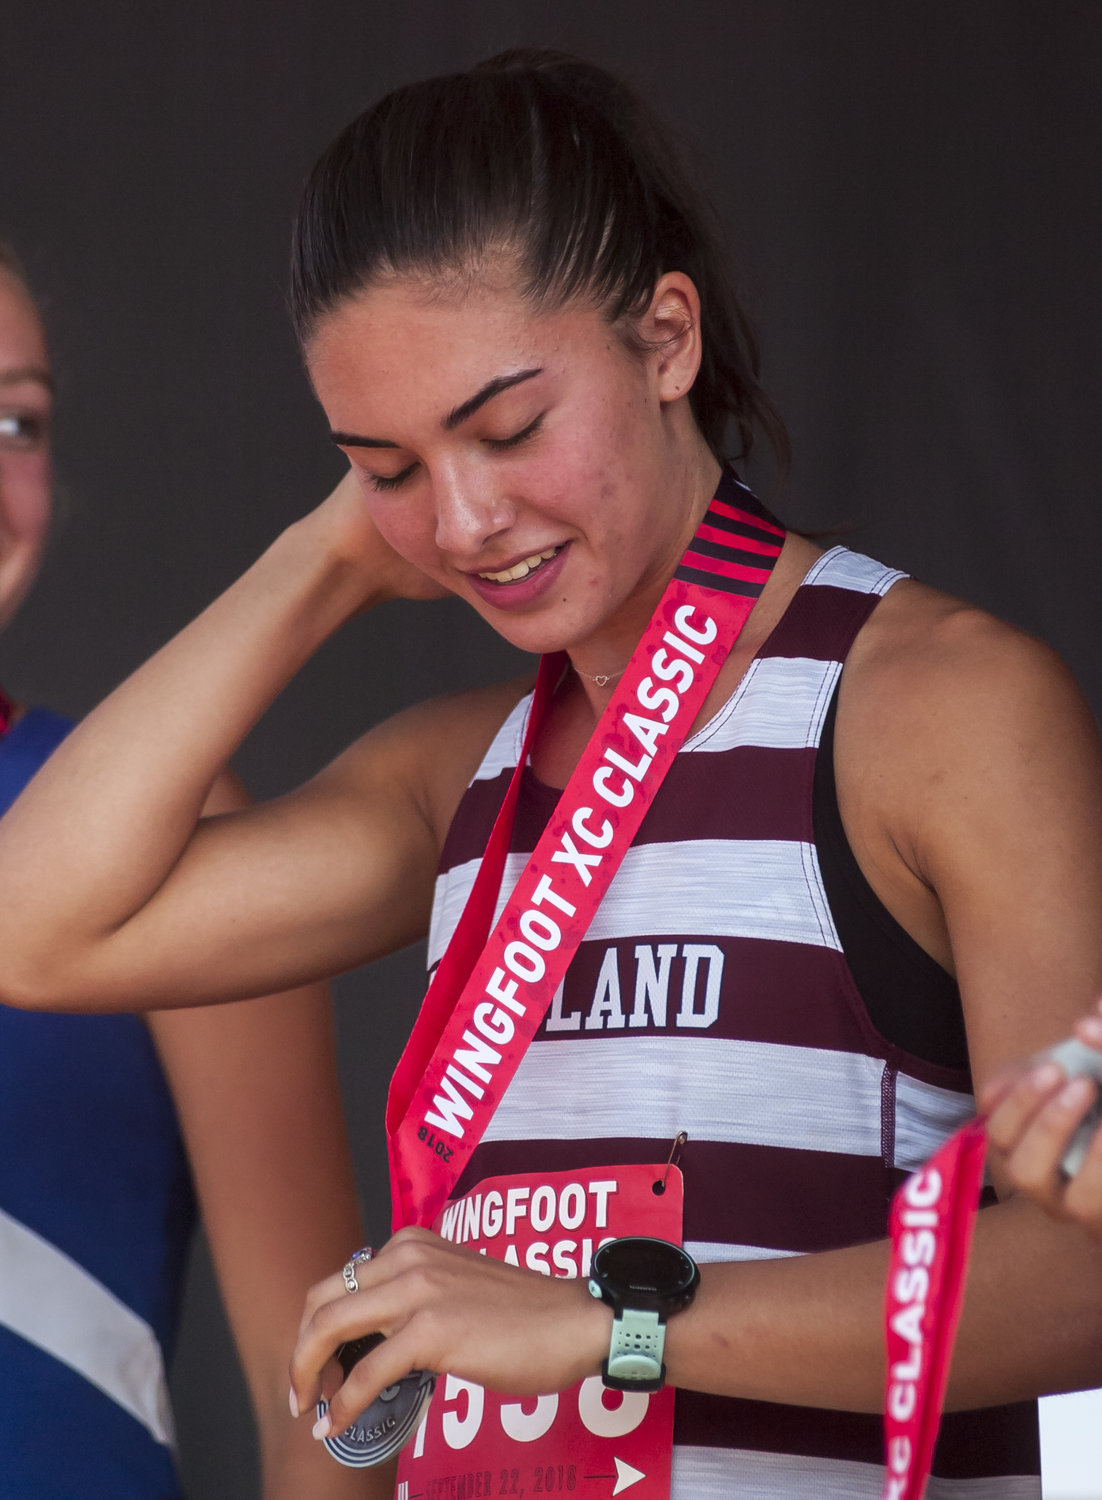 Woodland junior runner McKenna Trapheagen puts on her medal for finishing in the top 10 of the highly competitive Wingfoot XC Classic Saturday at Sam Smith Park.